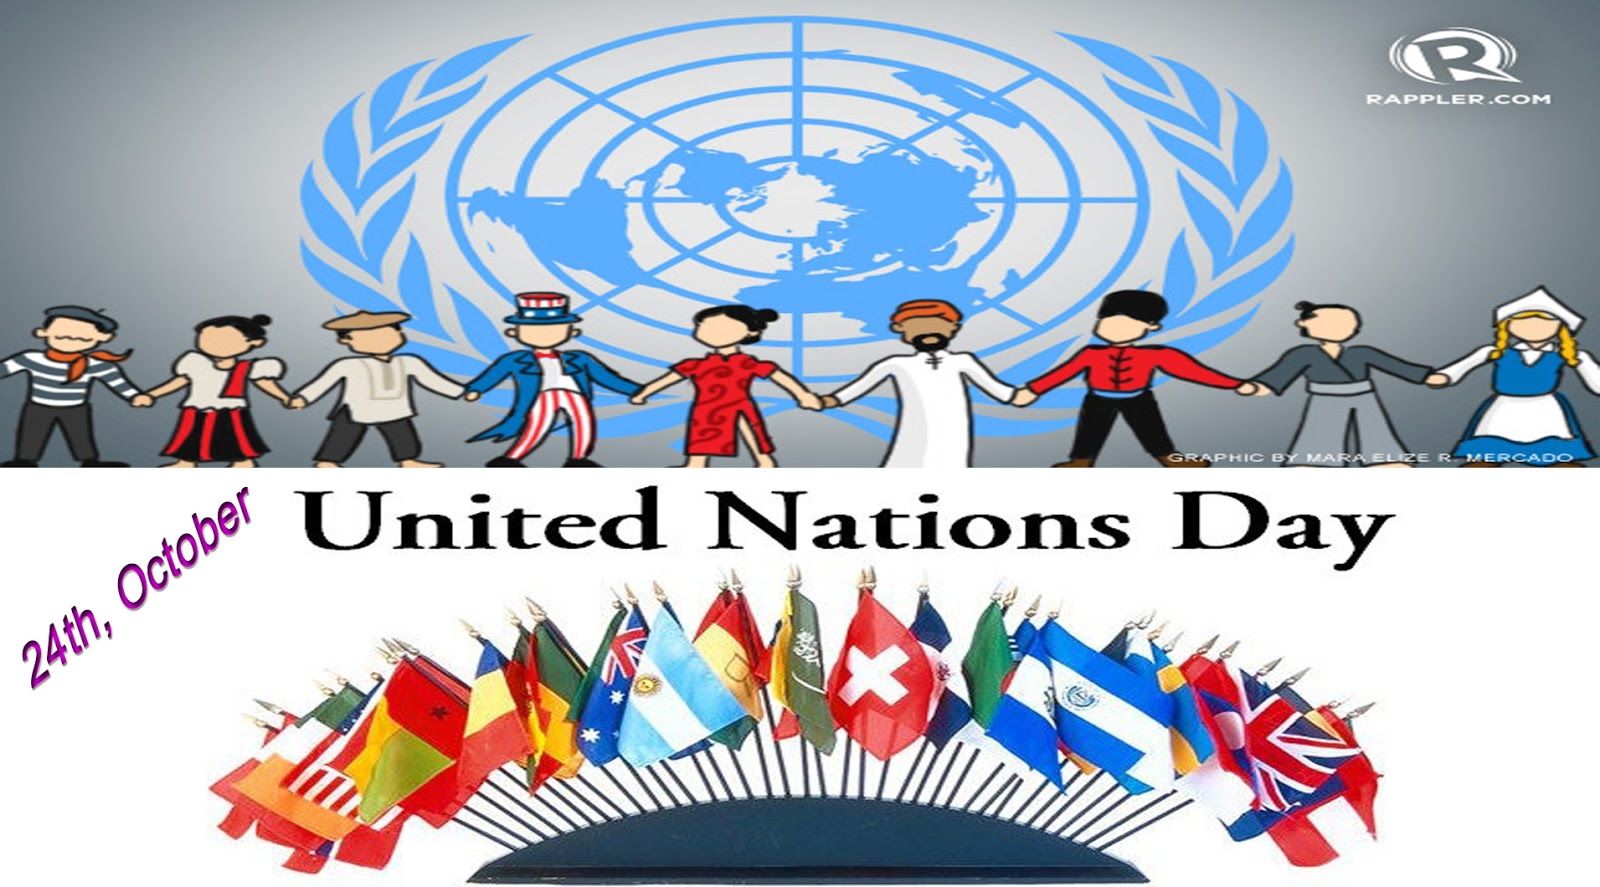 24th october United Nations Day united people clipart.